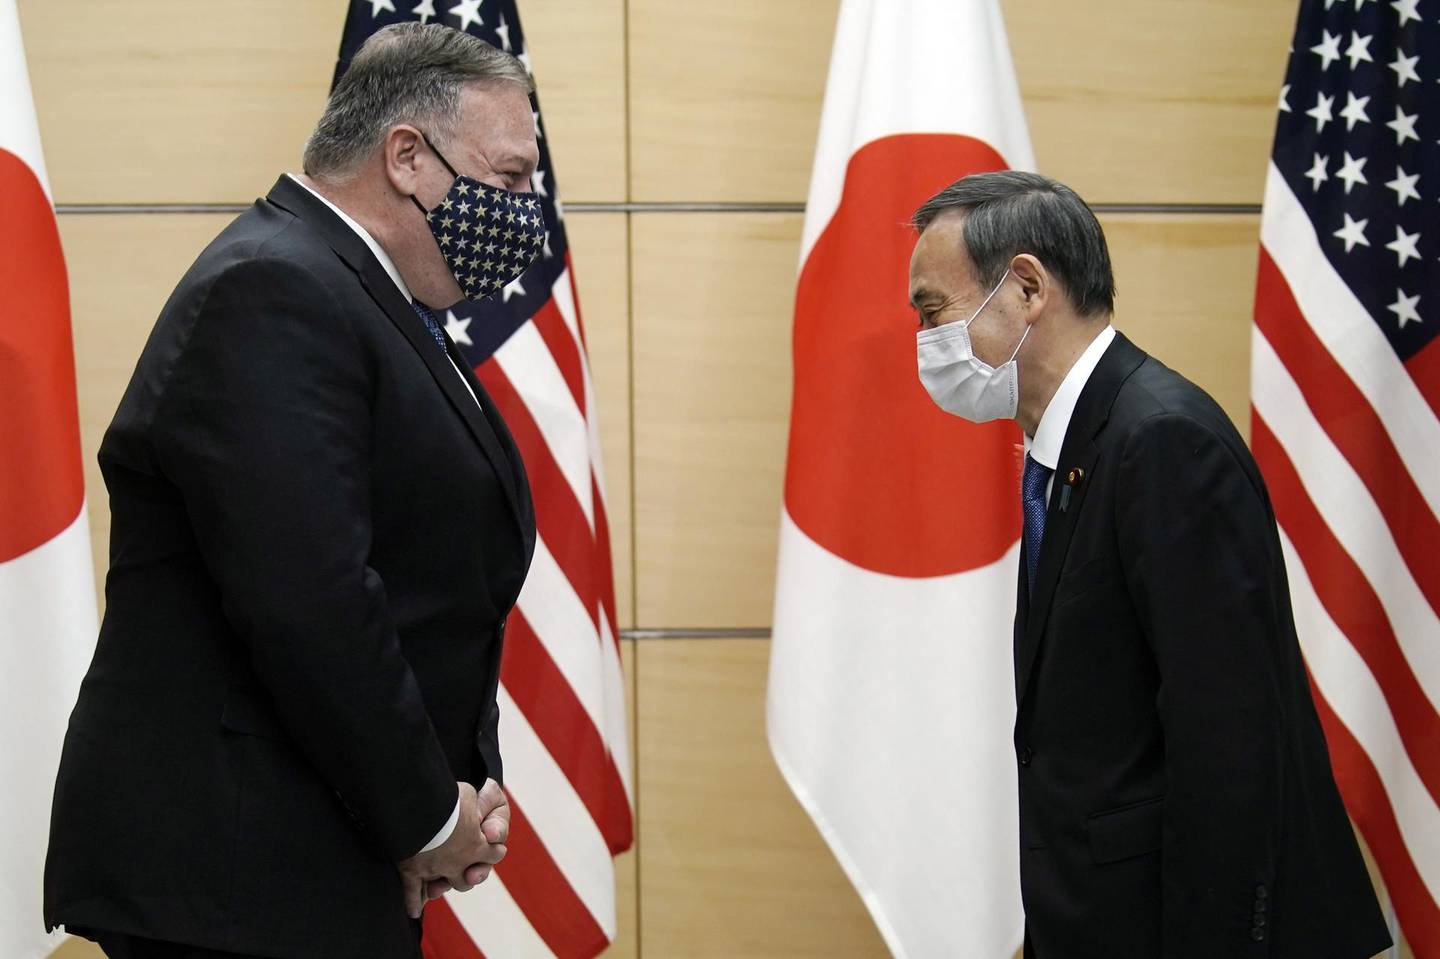 Michael Pompeo, U.S. Secretary of State, left, greets with Yoshihide Suga, Japan's prime minister, prior to a meeting at the prime minister's office in Tokyo, Japan, on Tuesday, Oct. 6, 2020. Pompeowill attend the Quadrilateral Security Dialogue (Quad) ministerial meeting later Tuesday in a bid to keep up the pressure on China amid the coronavirus crisis rocking Washington. Photographer: Eugene Hoshiko/AP Photo/Bloomberg